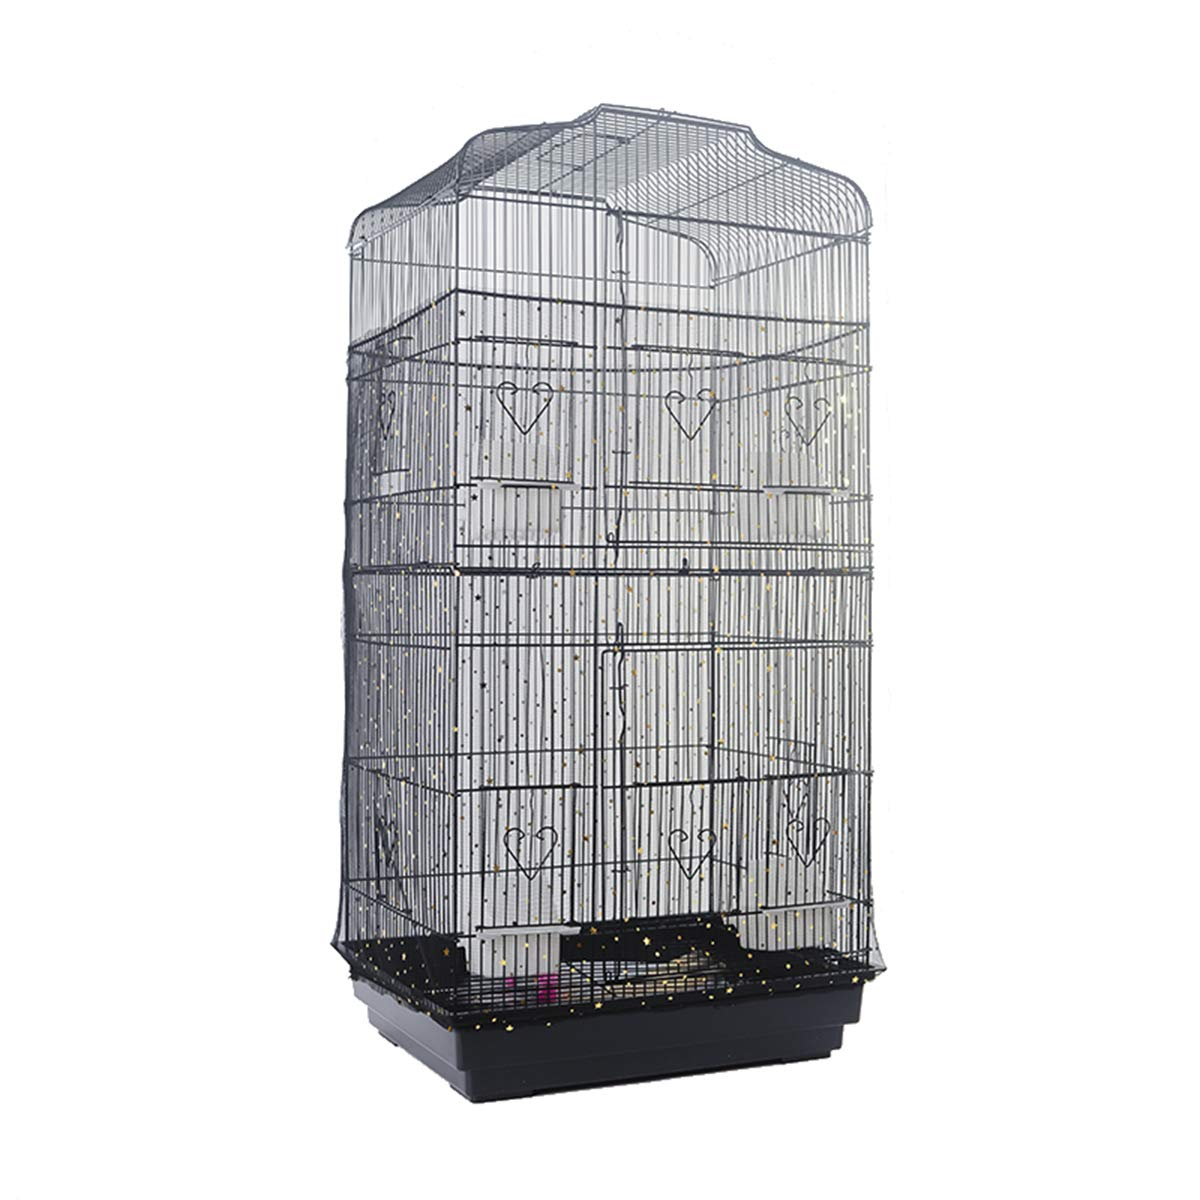 Bonaweite Extra Large Mesh Bird Seed Catcher, Bird Cage Stretchy Guard Cover, Birdcage Nylon Shell Skirt Traps Guards - 29.5'' Height by Bonaweite